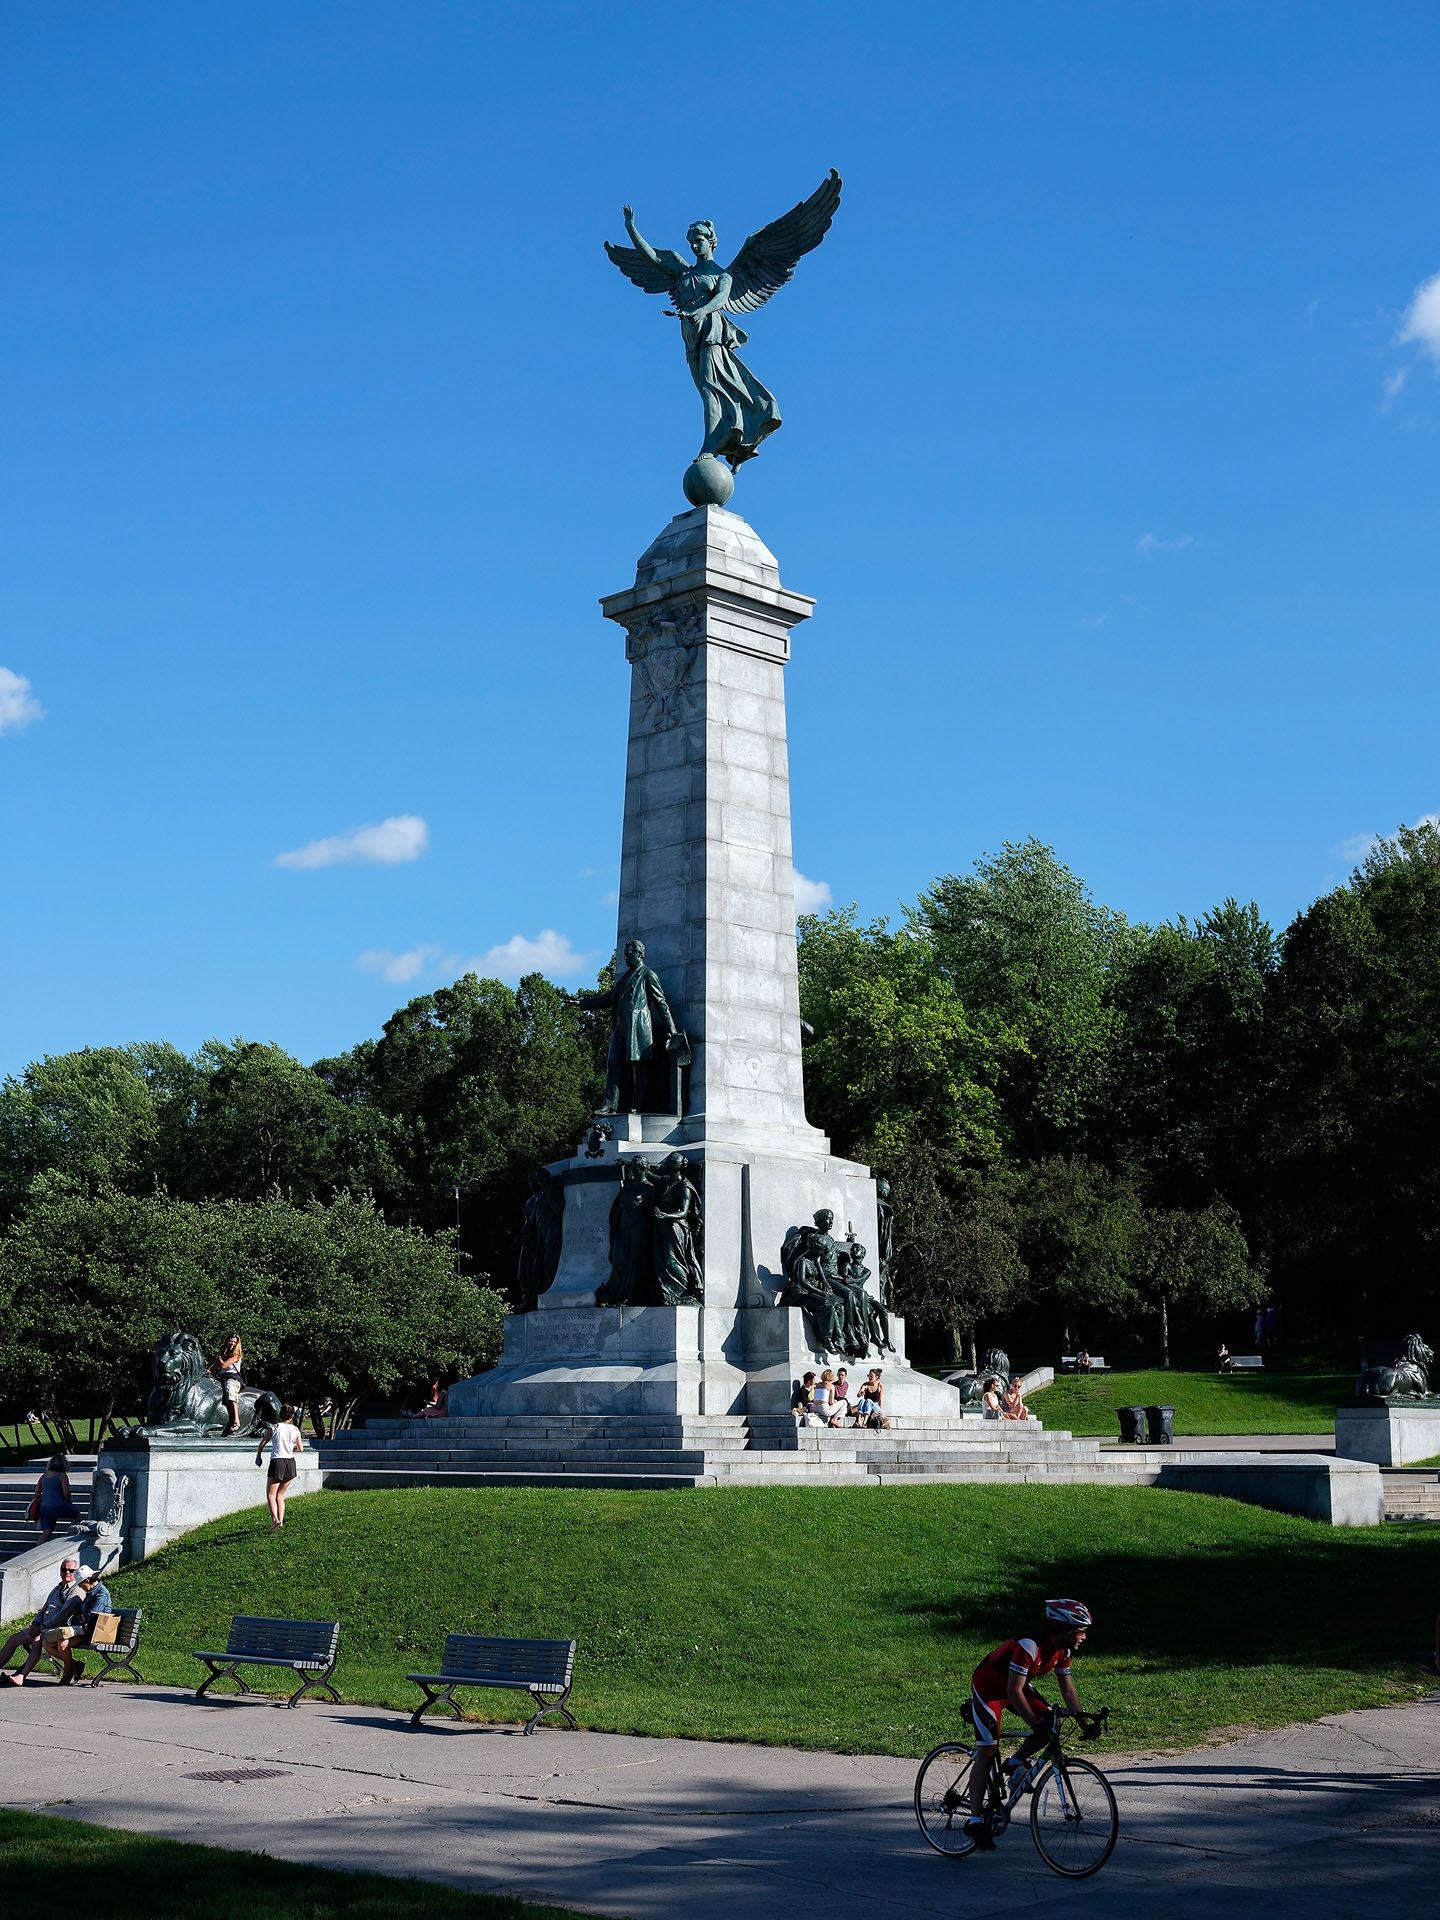 Mount-Royal monument in the sun photographed by Guillaume Simoneau as part of Off Duty Montreal series for The Wall Street Journal magazine